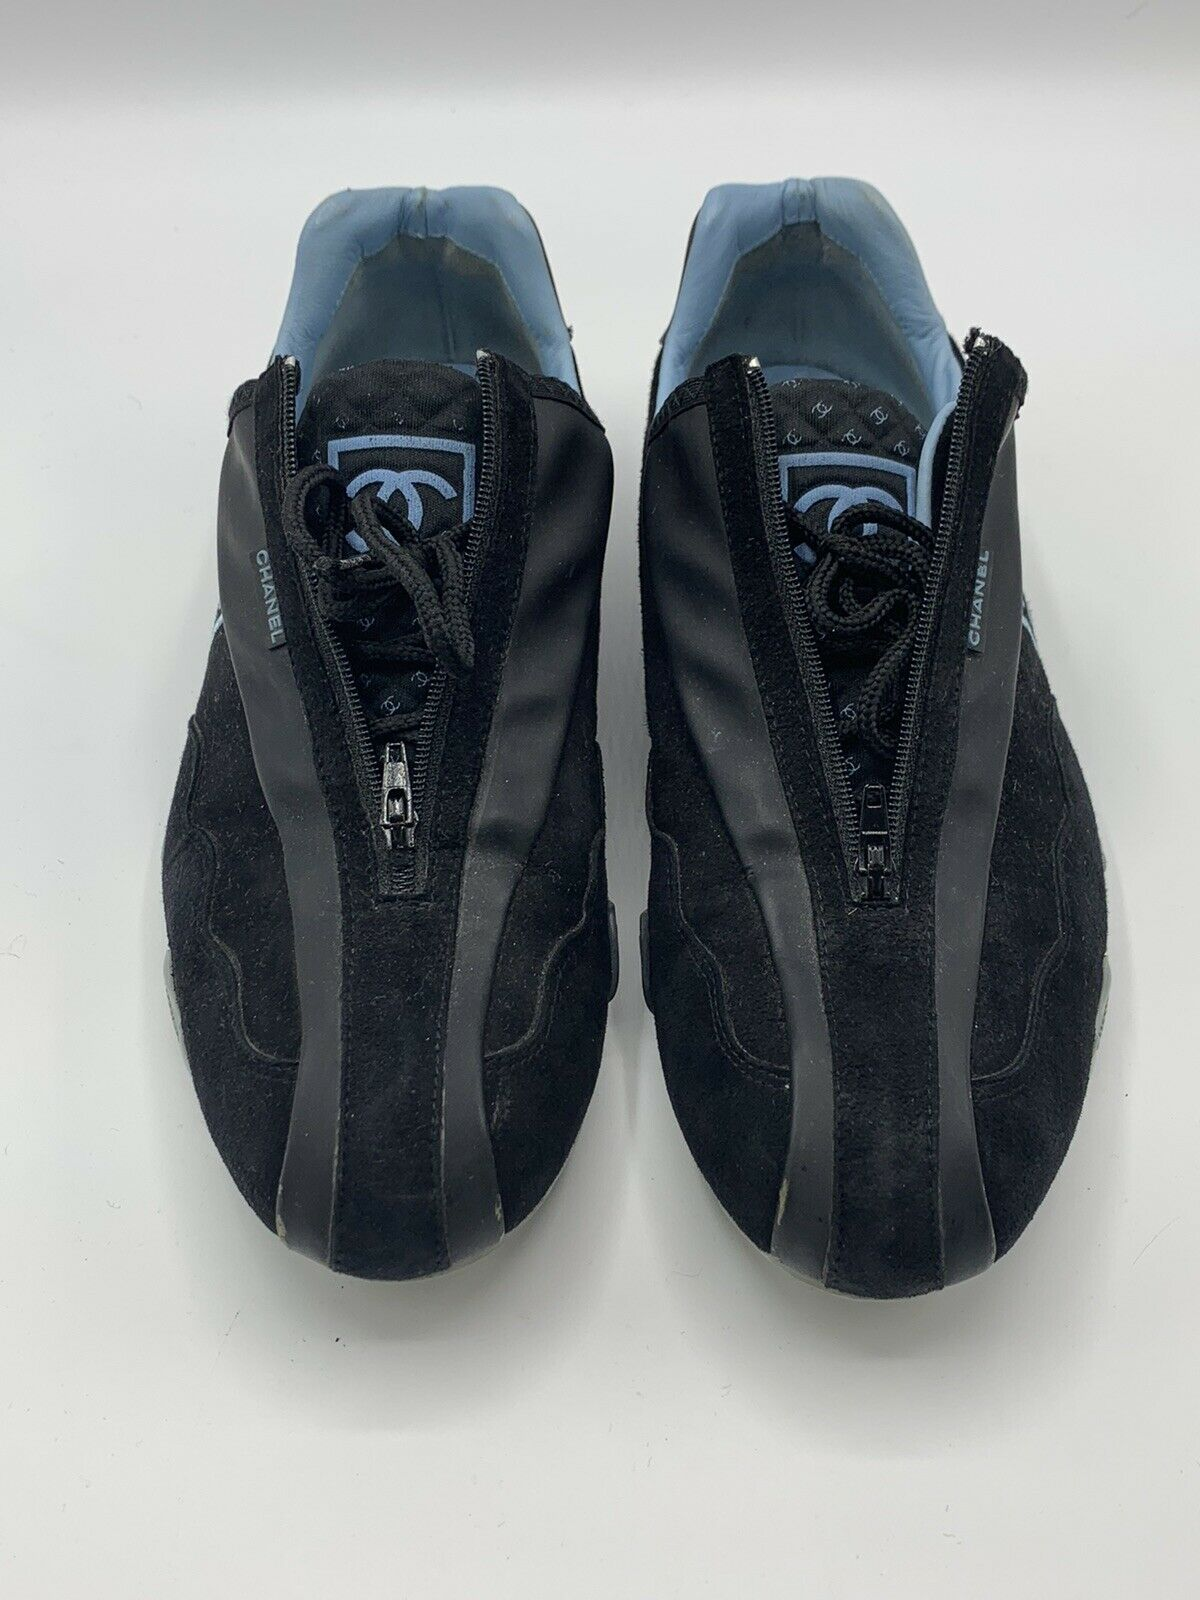 Chanel Sneakers - image 7